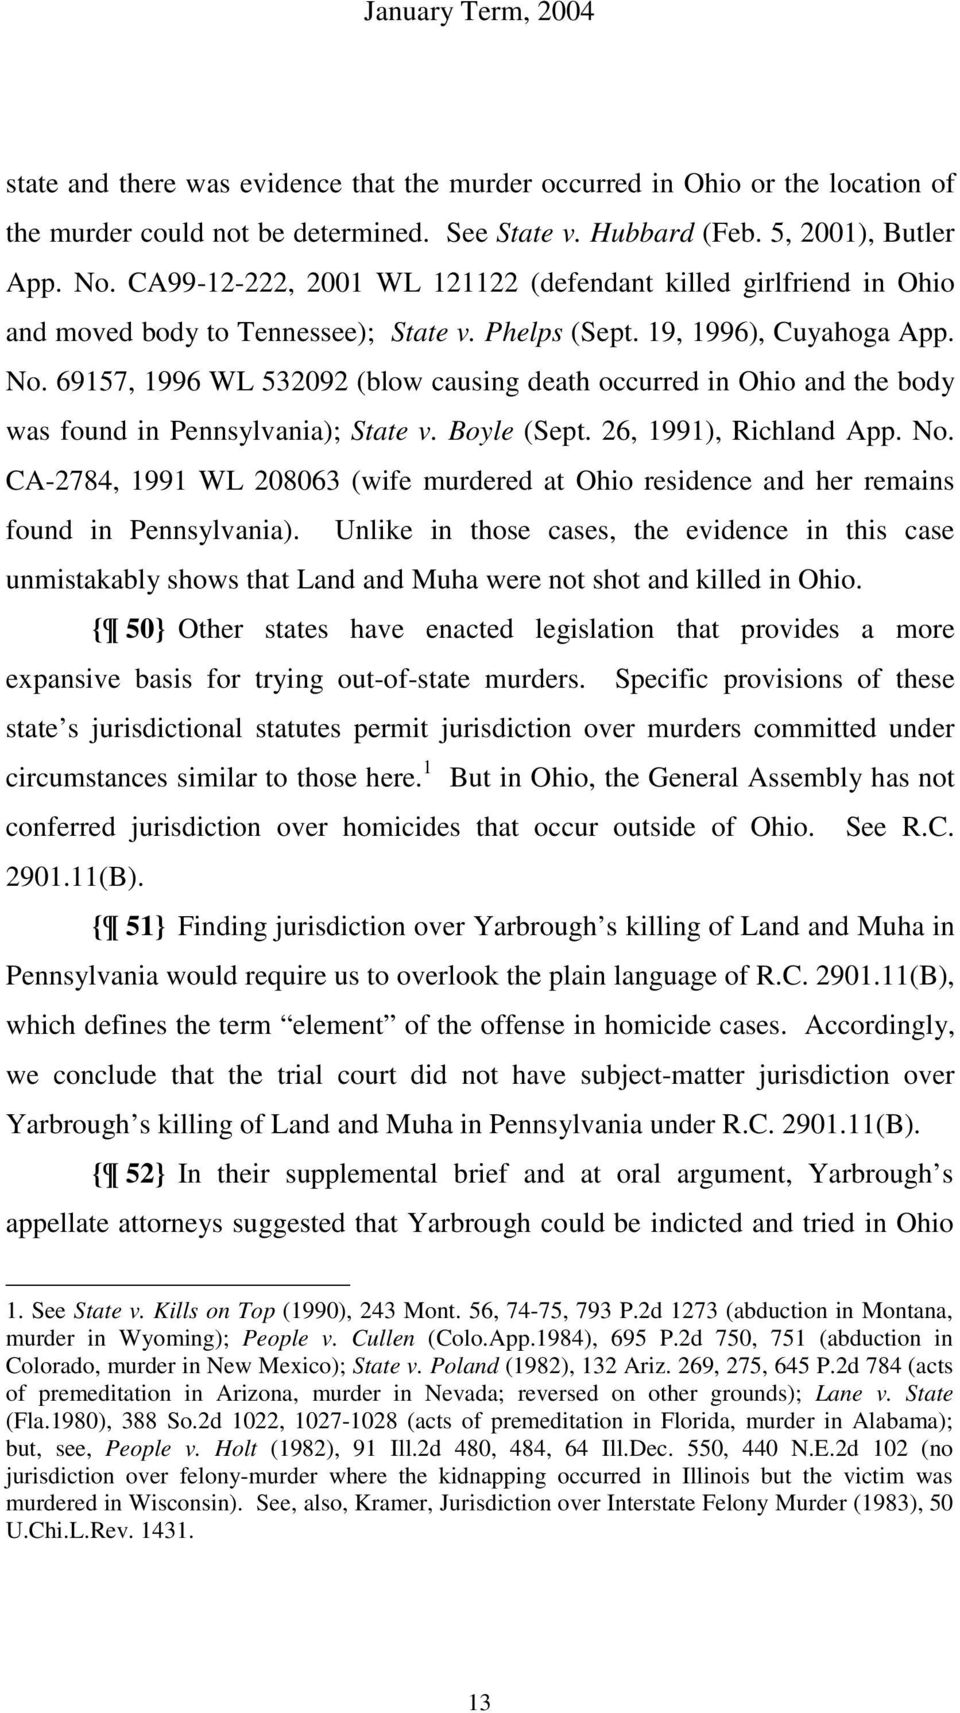 69157, 1996 WL 532092 (blow causing death occurred in Ohio and the body was found in Pennsylvania); State v. Boyle (Sept. 26, 1991), Richland App. No.